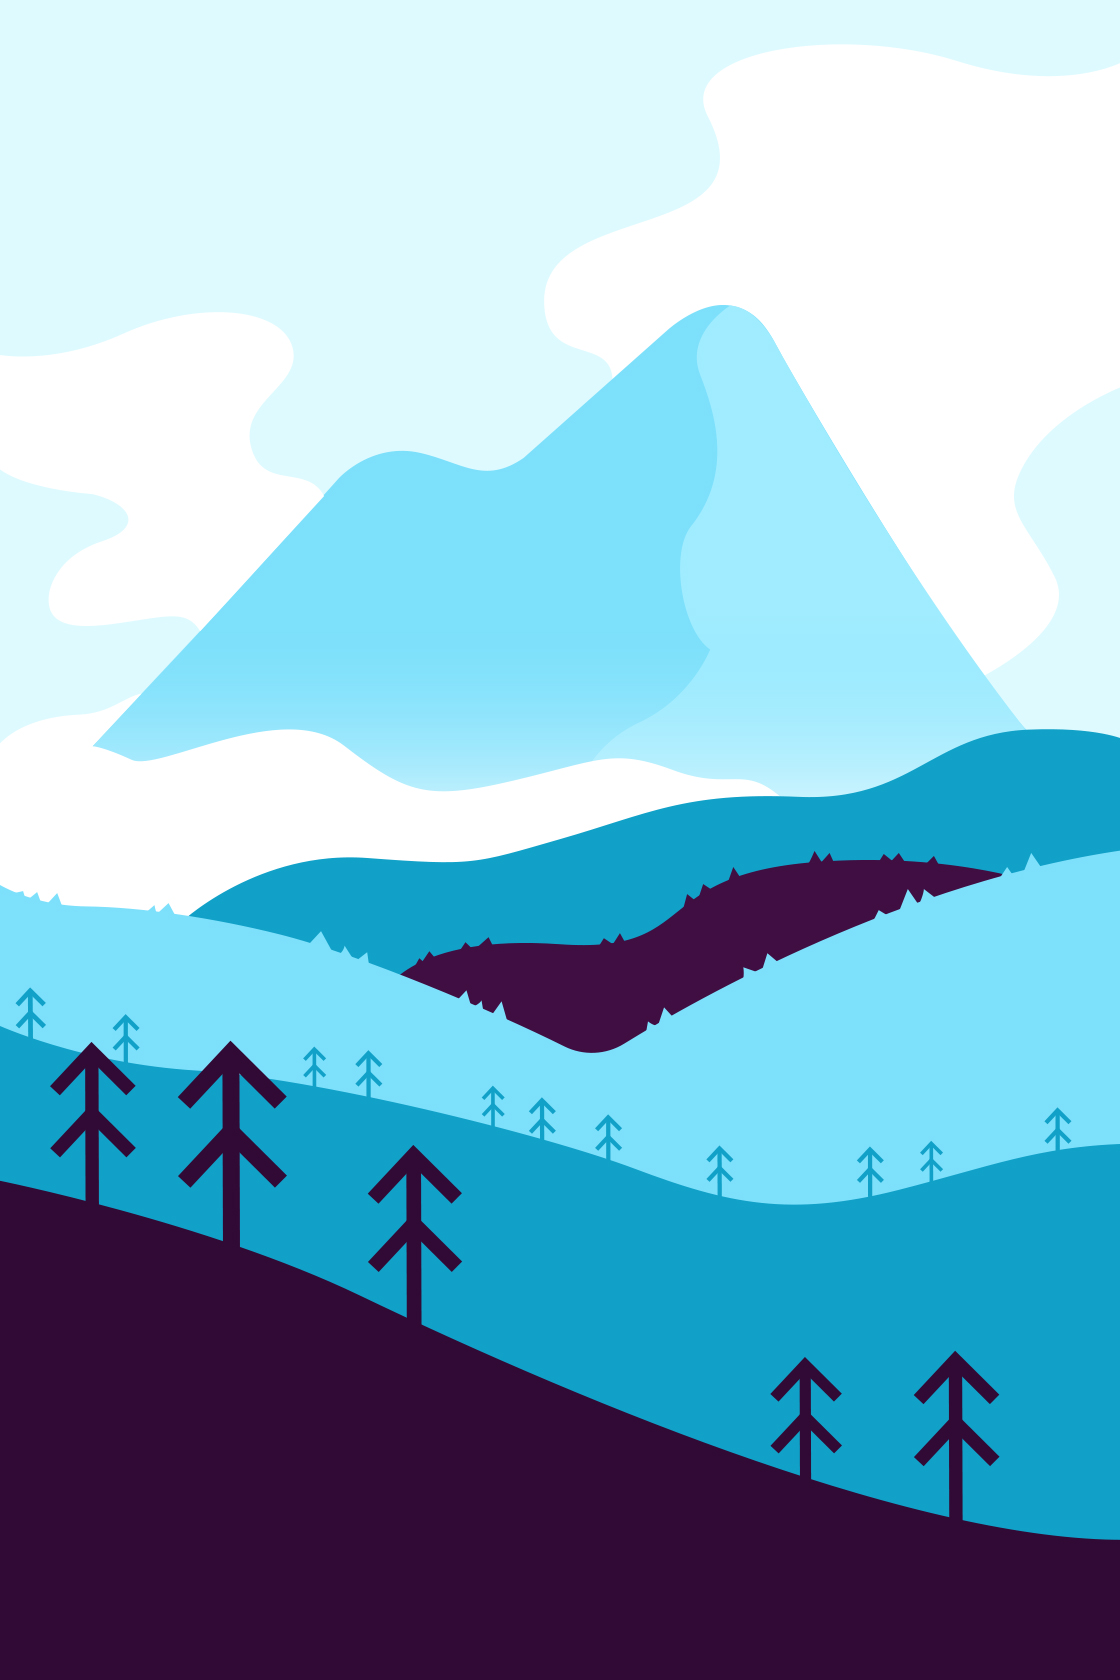 Pepperscombe_Mountain_Illustration